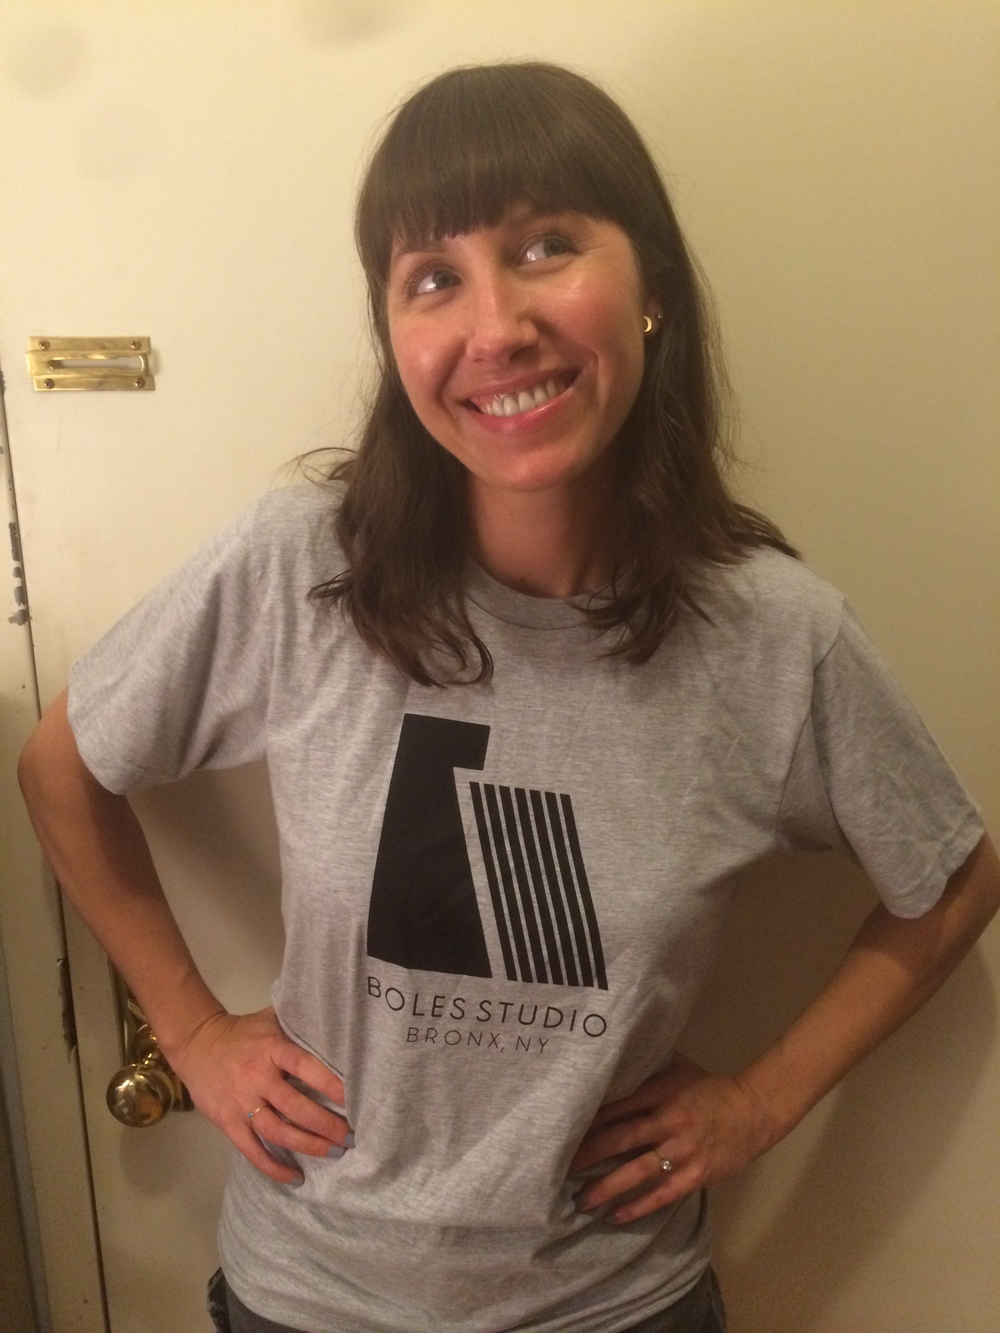 The lovely Danielle McCarthy modeling the new T-Shirts.